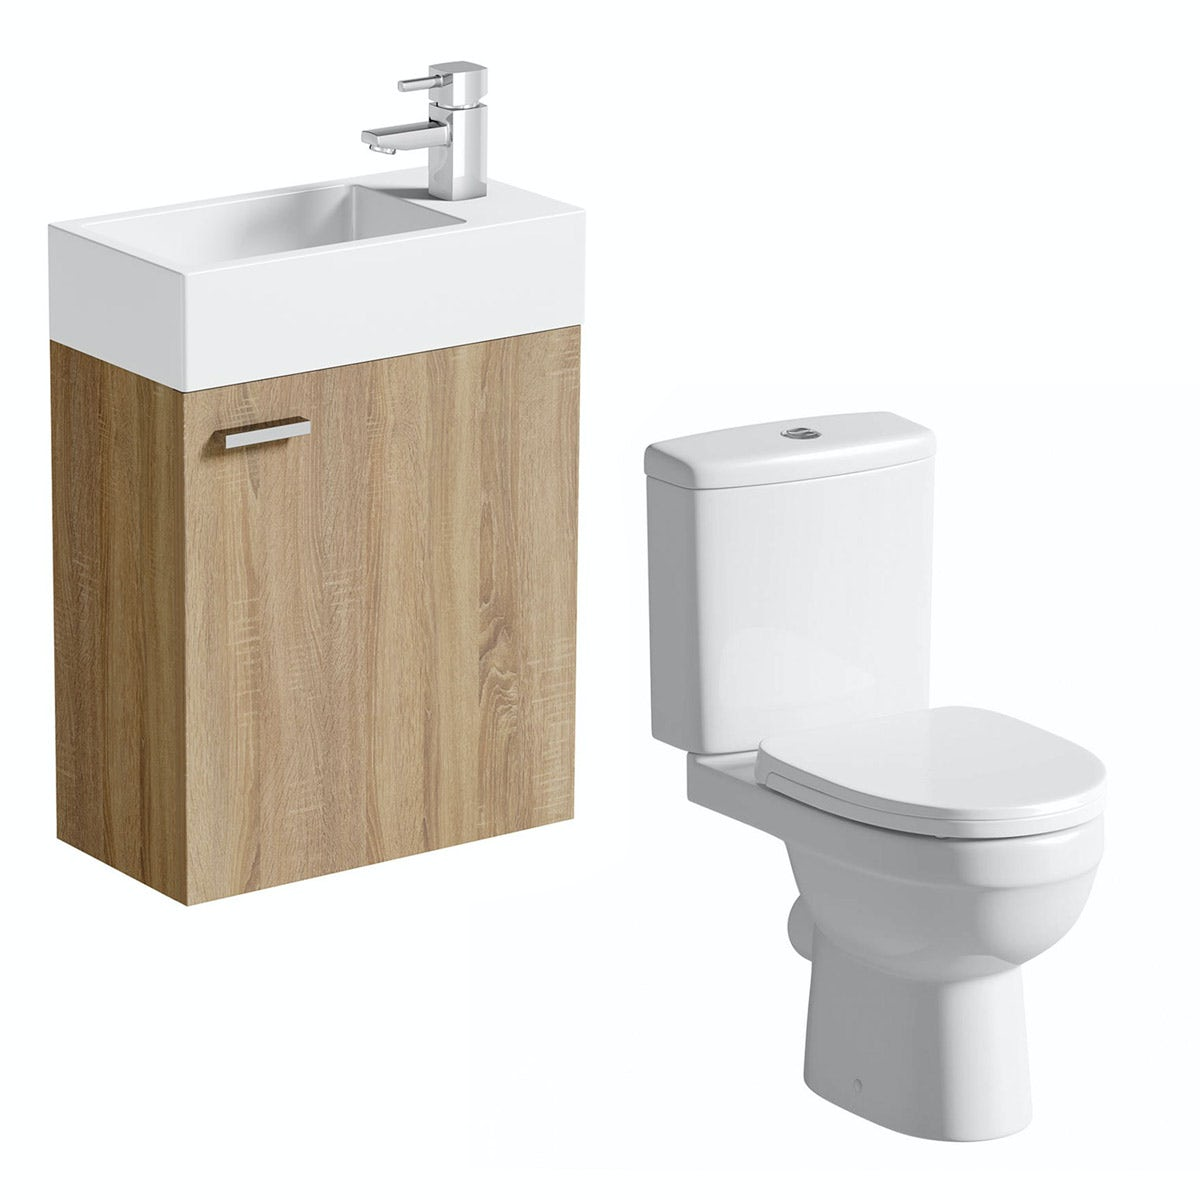 Compact oak wall hung unit with Eden close coupled toilet